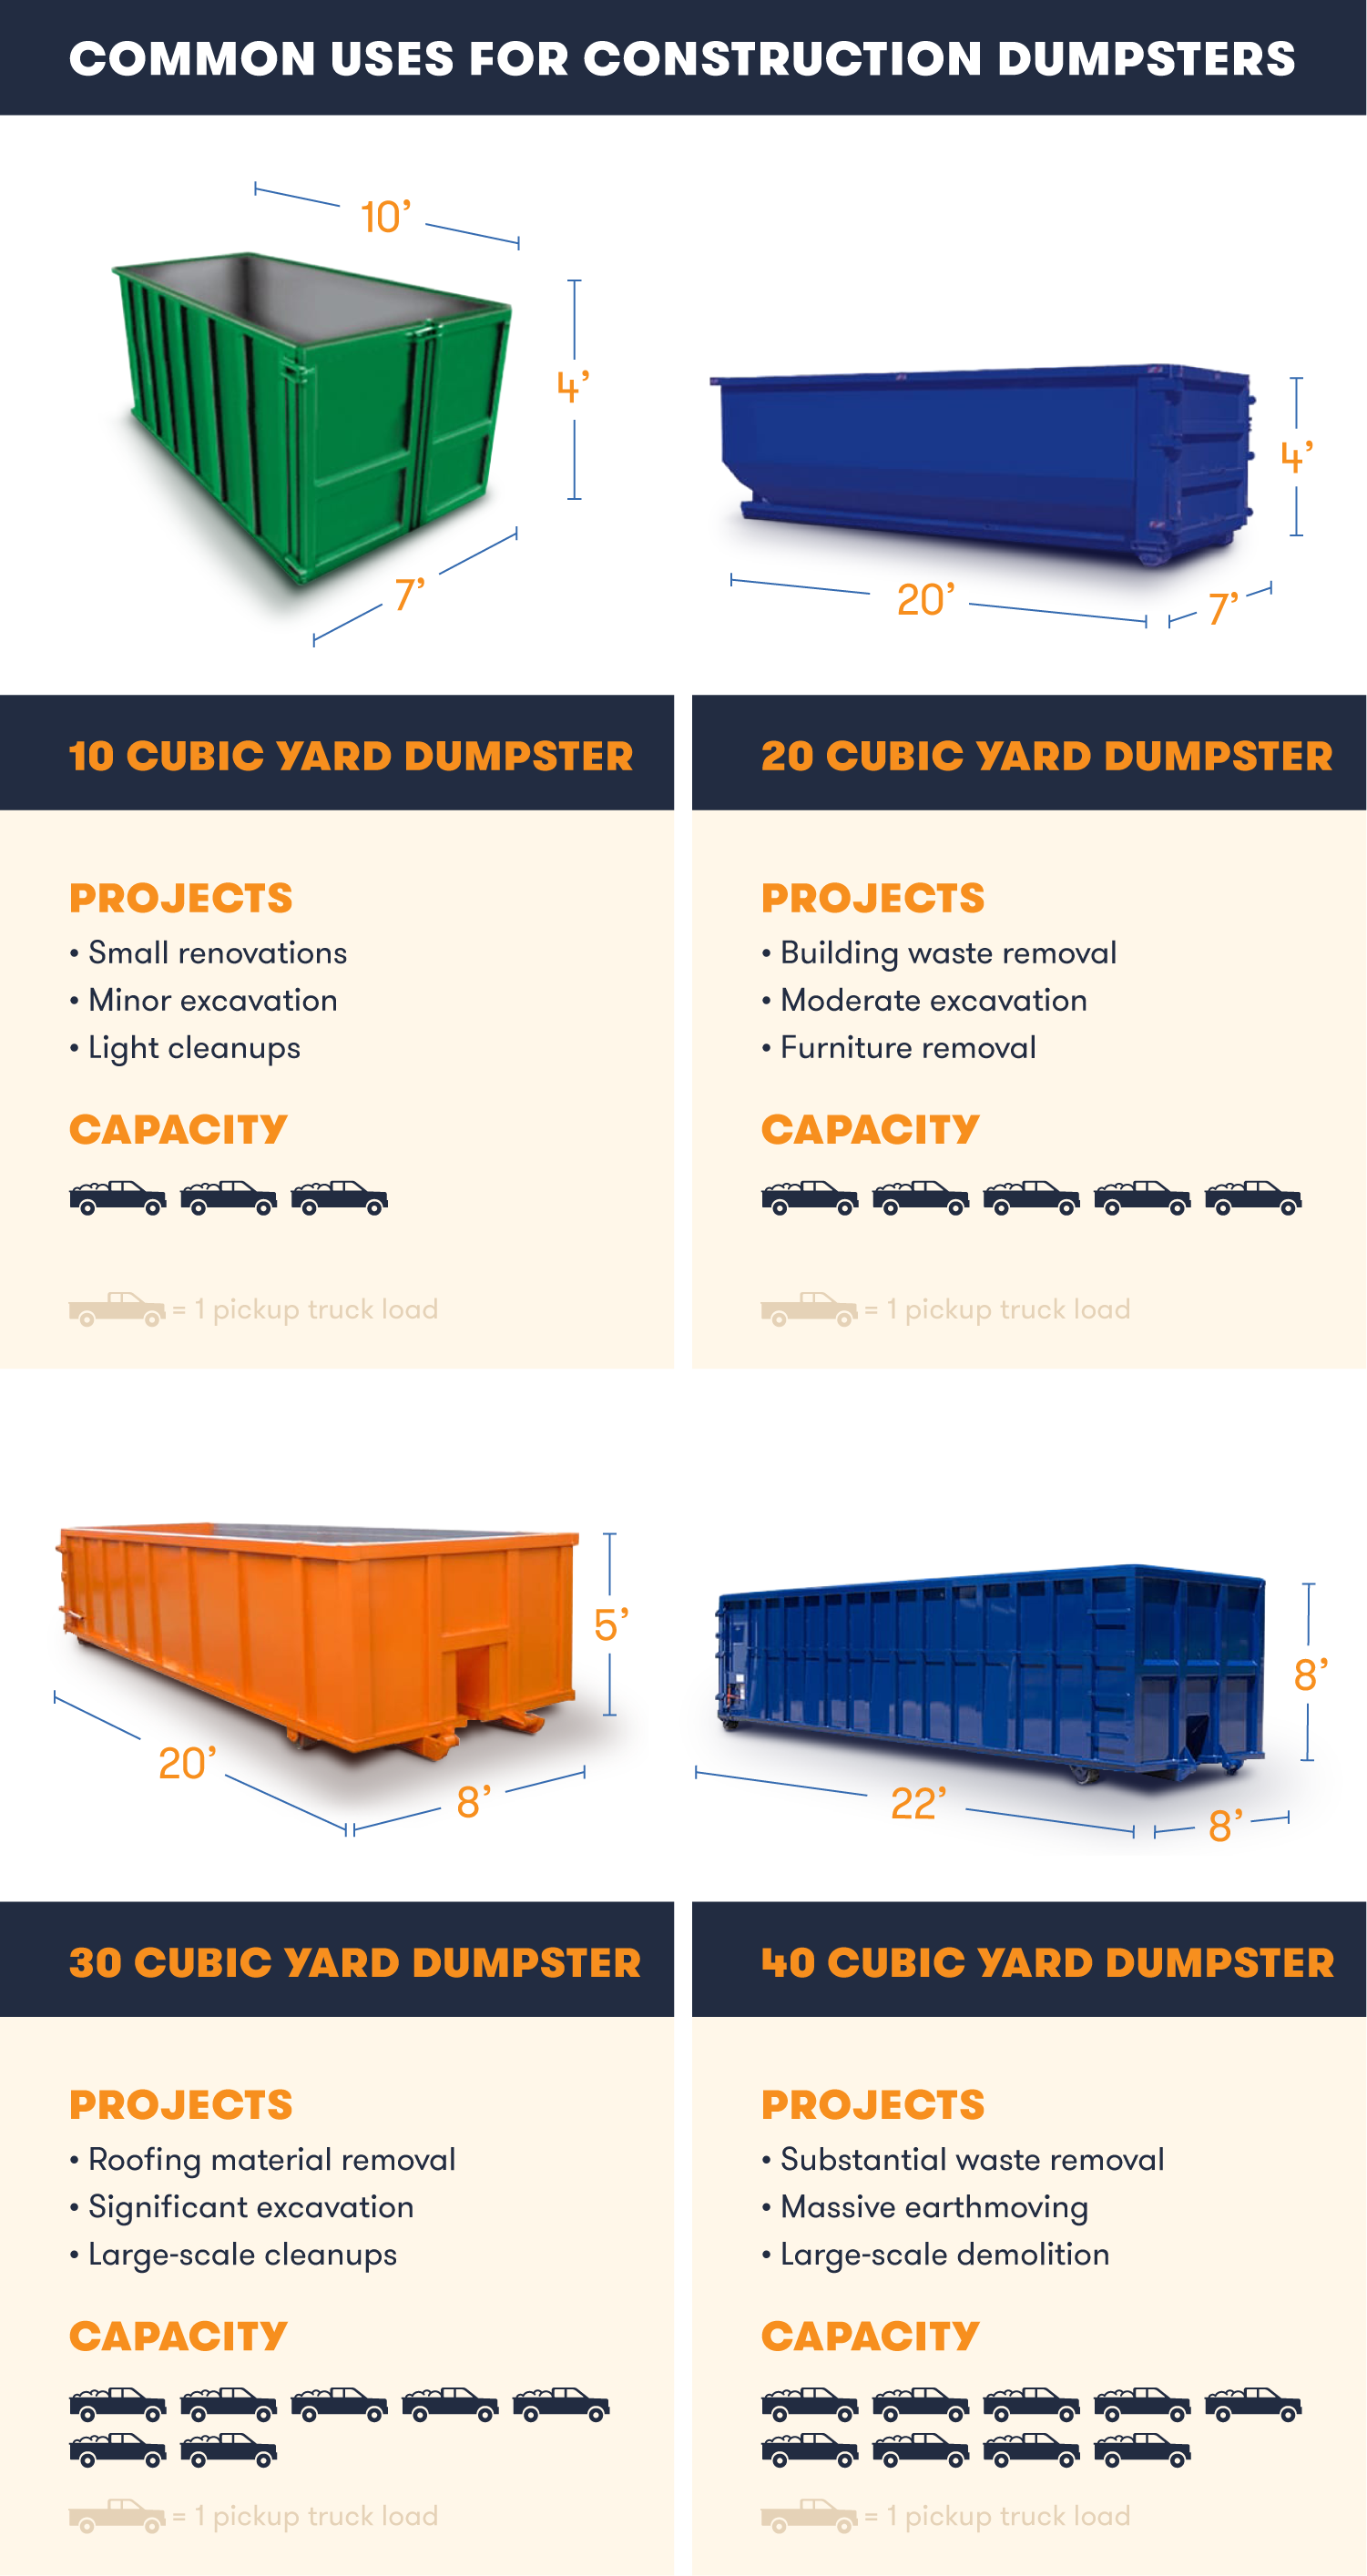 Common uses for dumpsters by size